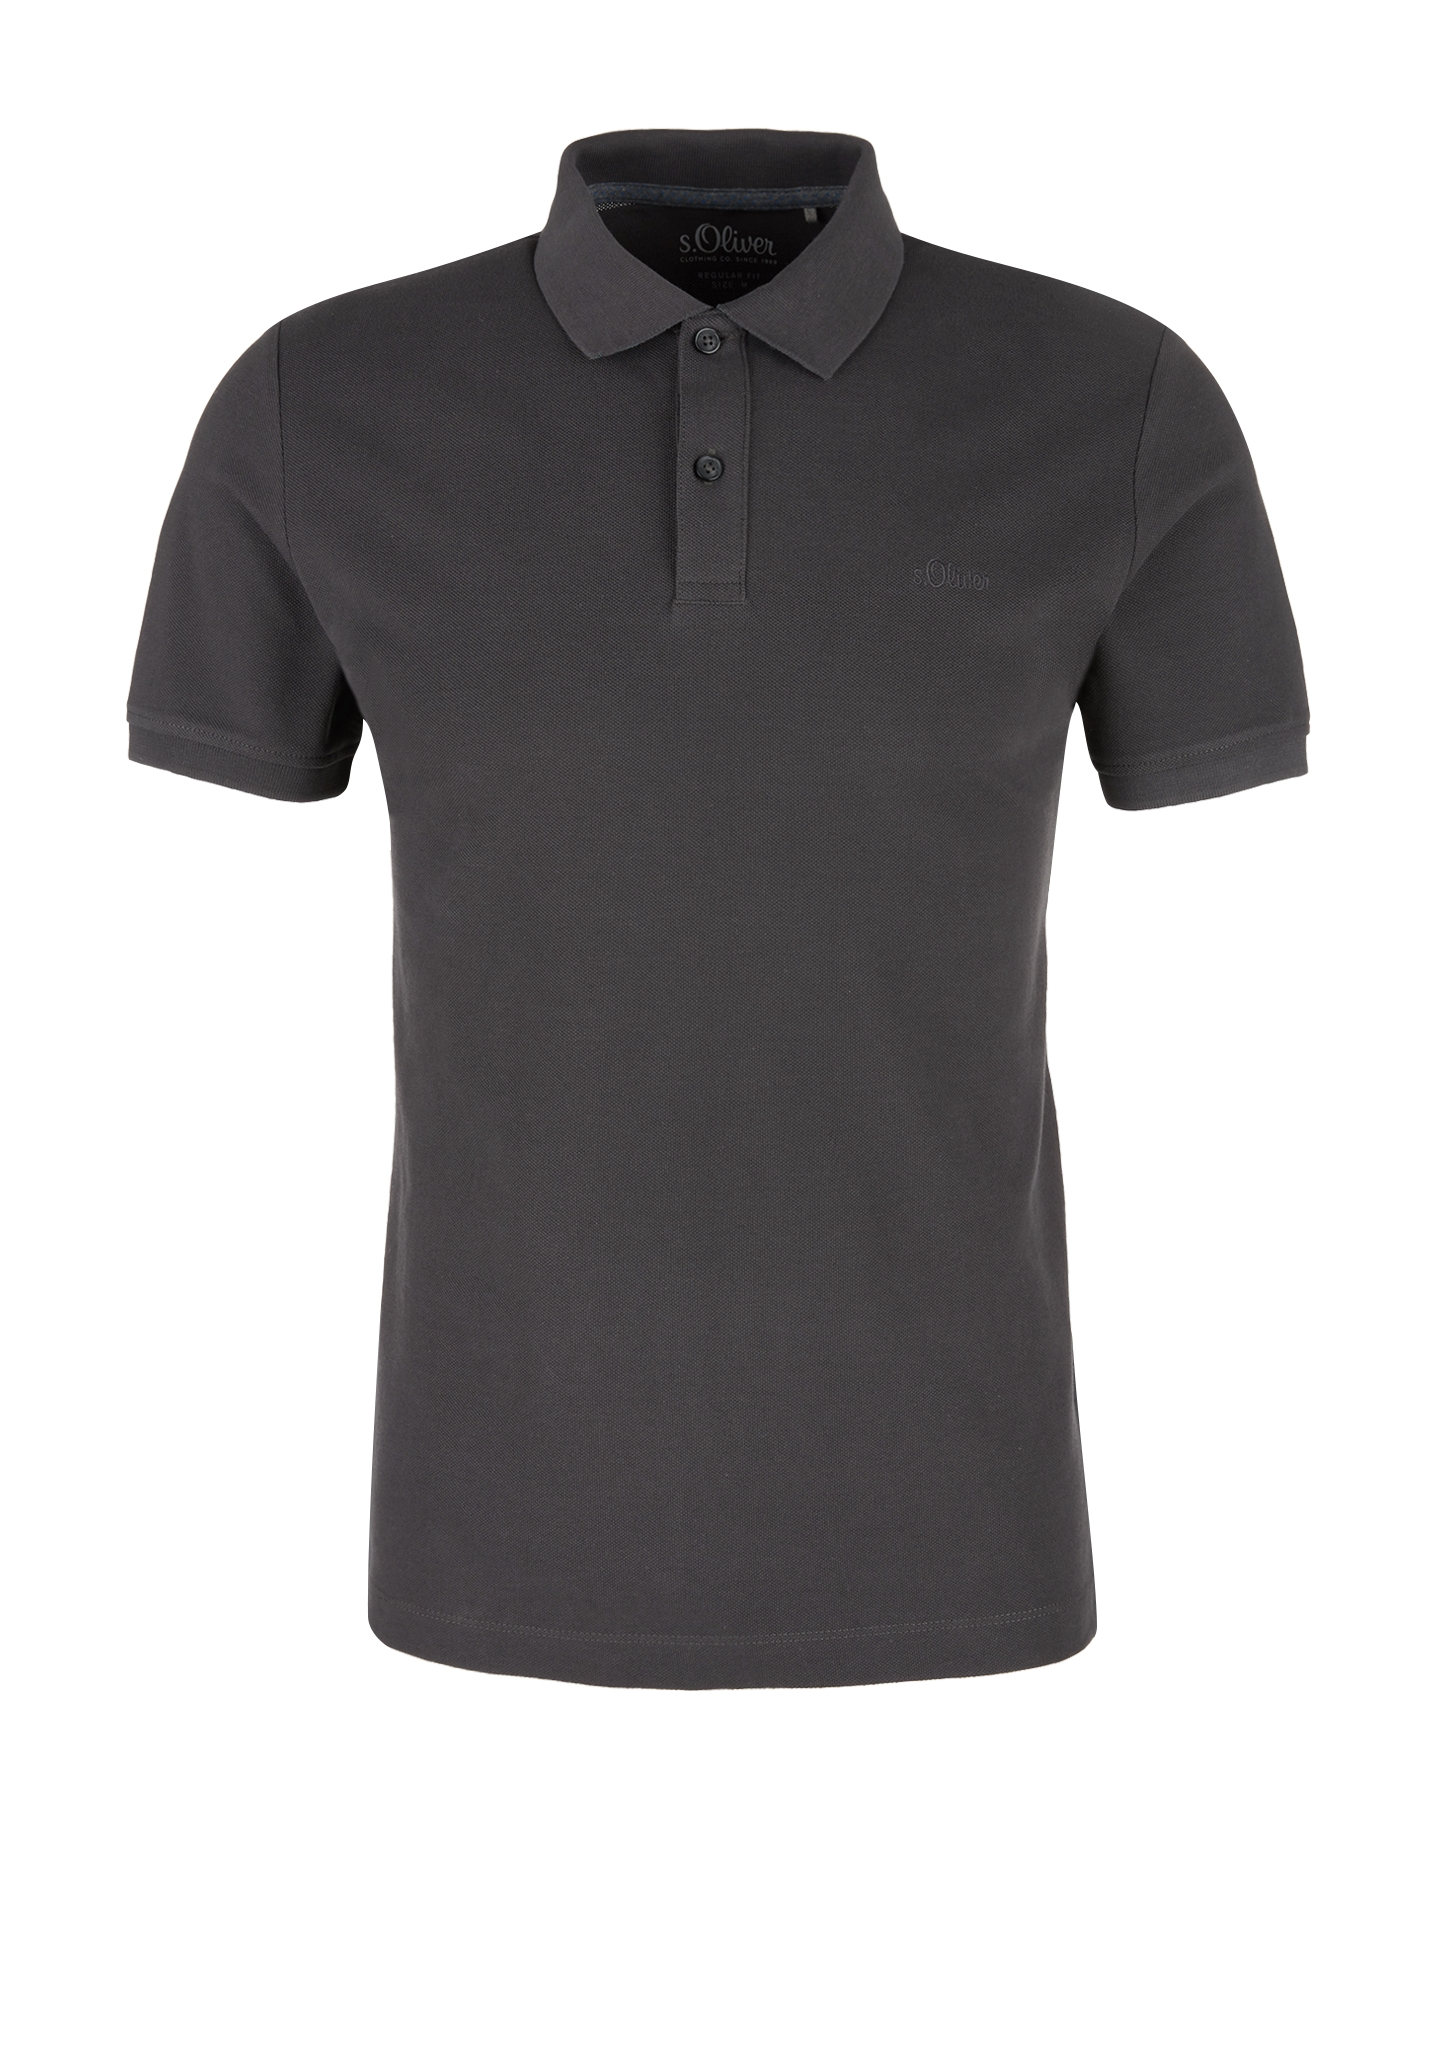 Poloshirt | Bekleidung > Polo Shirts | Grau | Meliert: 60% baumwolle -  40% polyester| unifarben: 100% baumwolle | s.Oliver